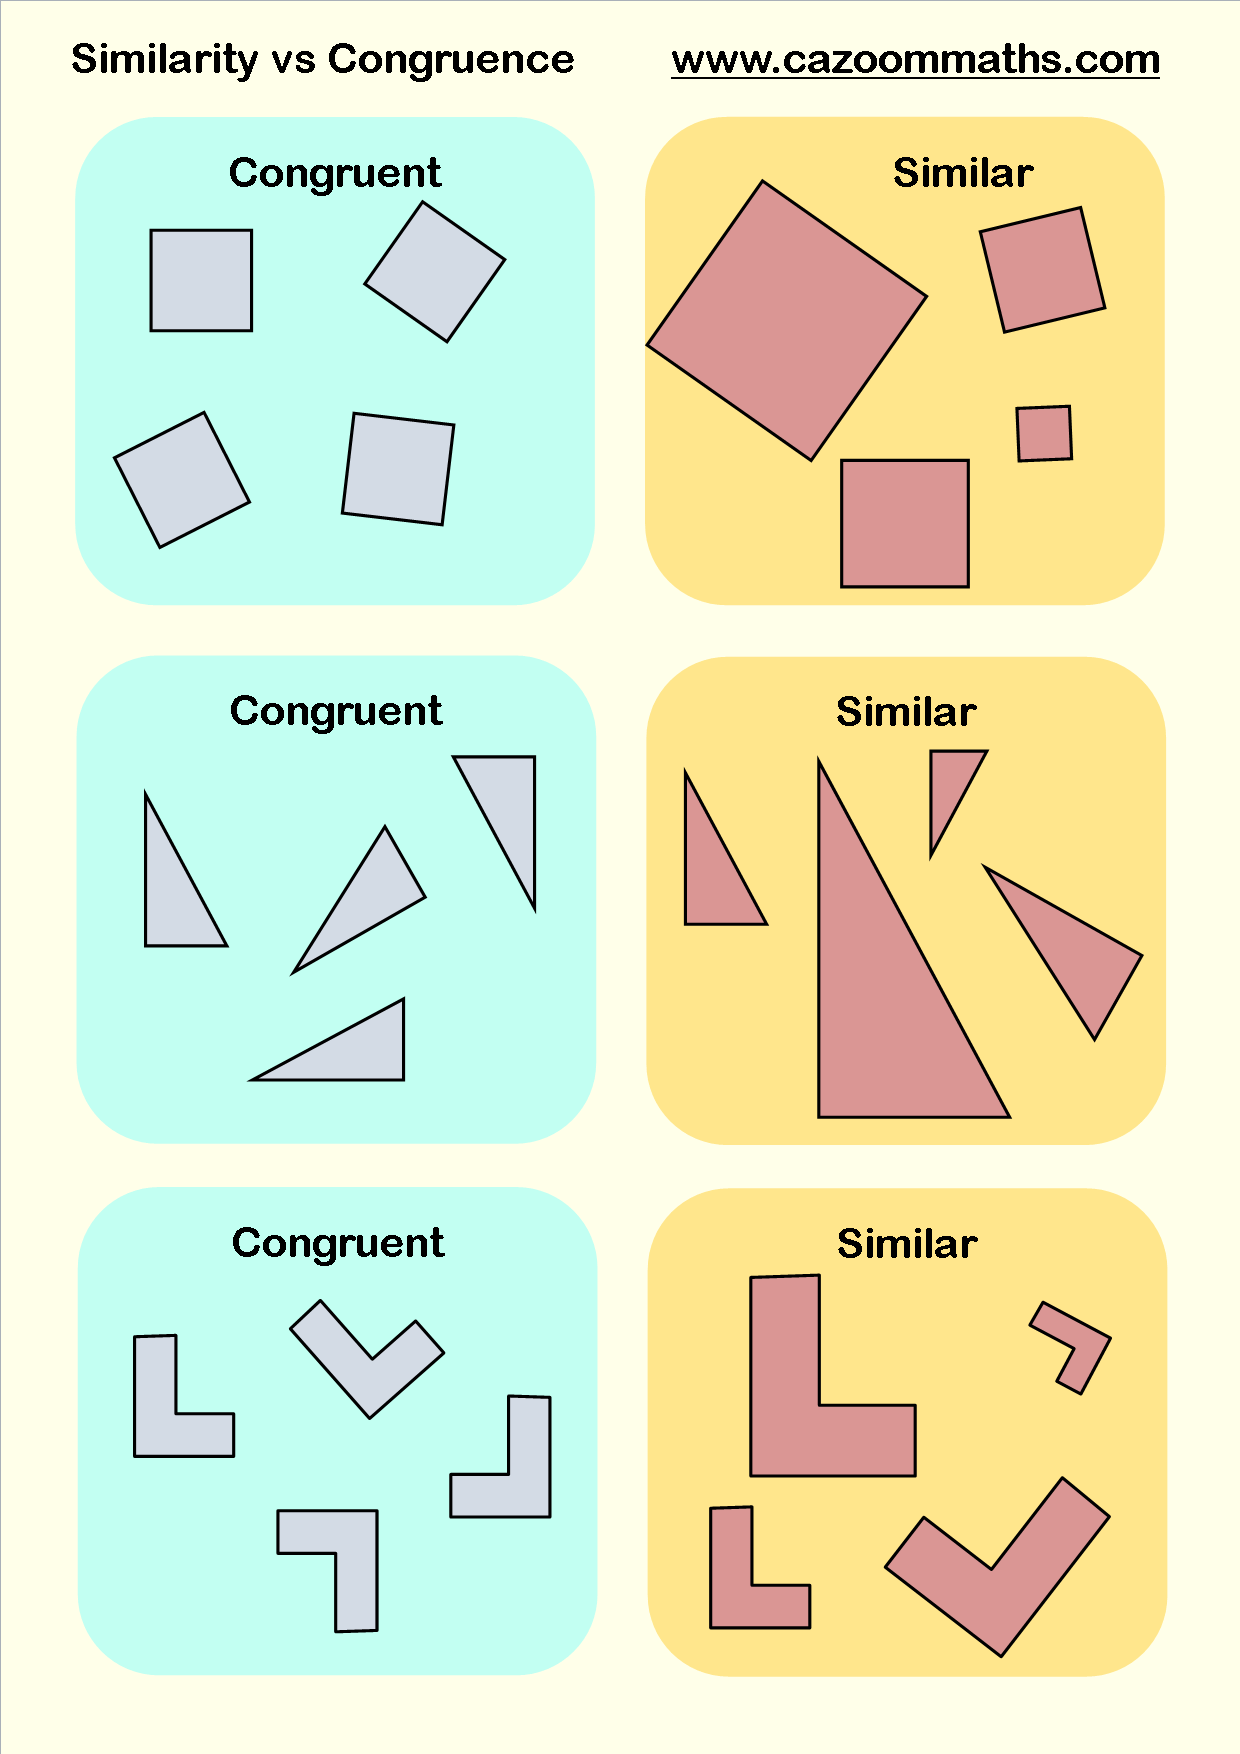 Similarity vs Congruent | Cazoom Maths Worksheets